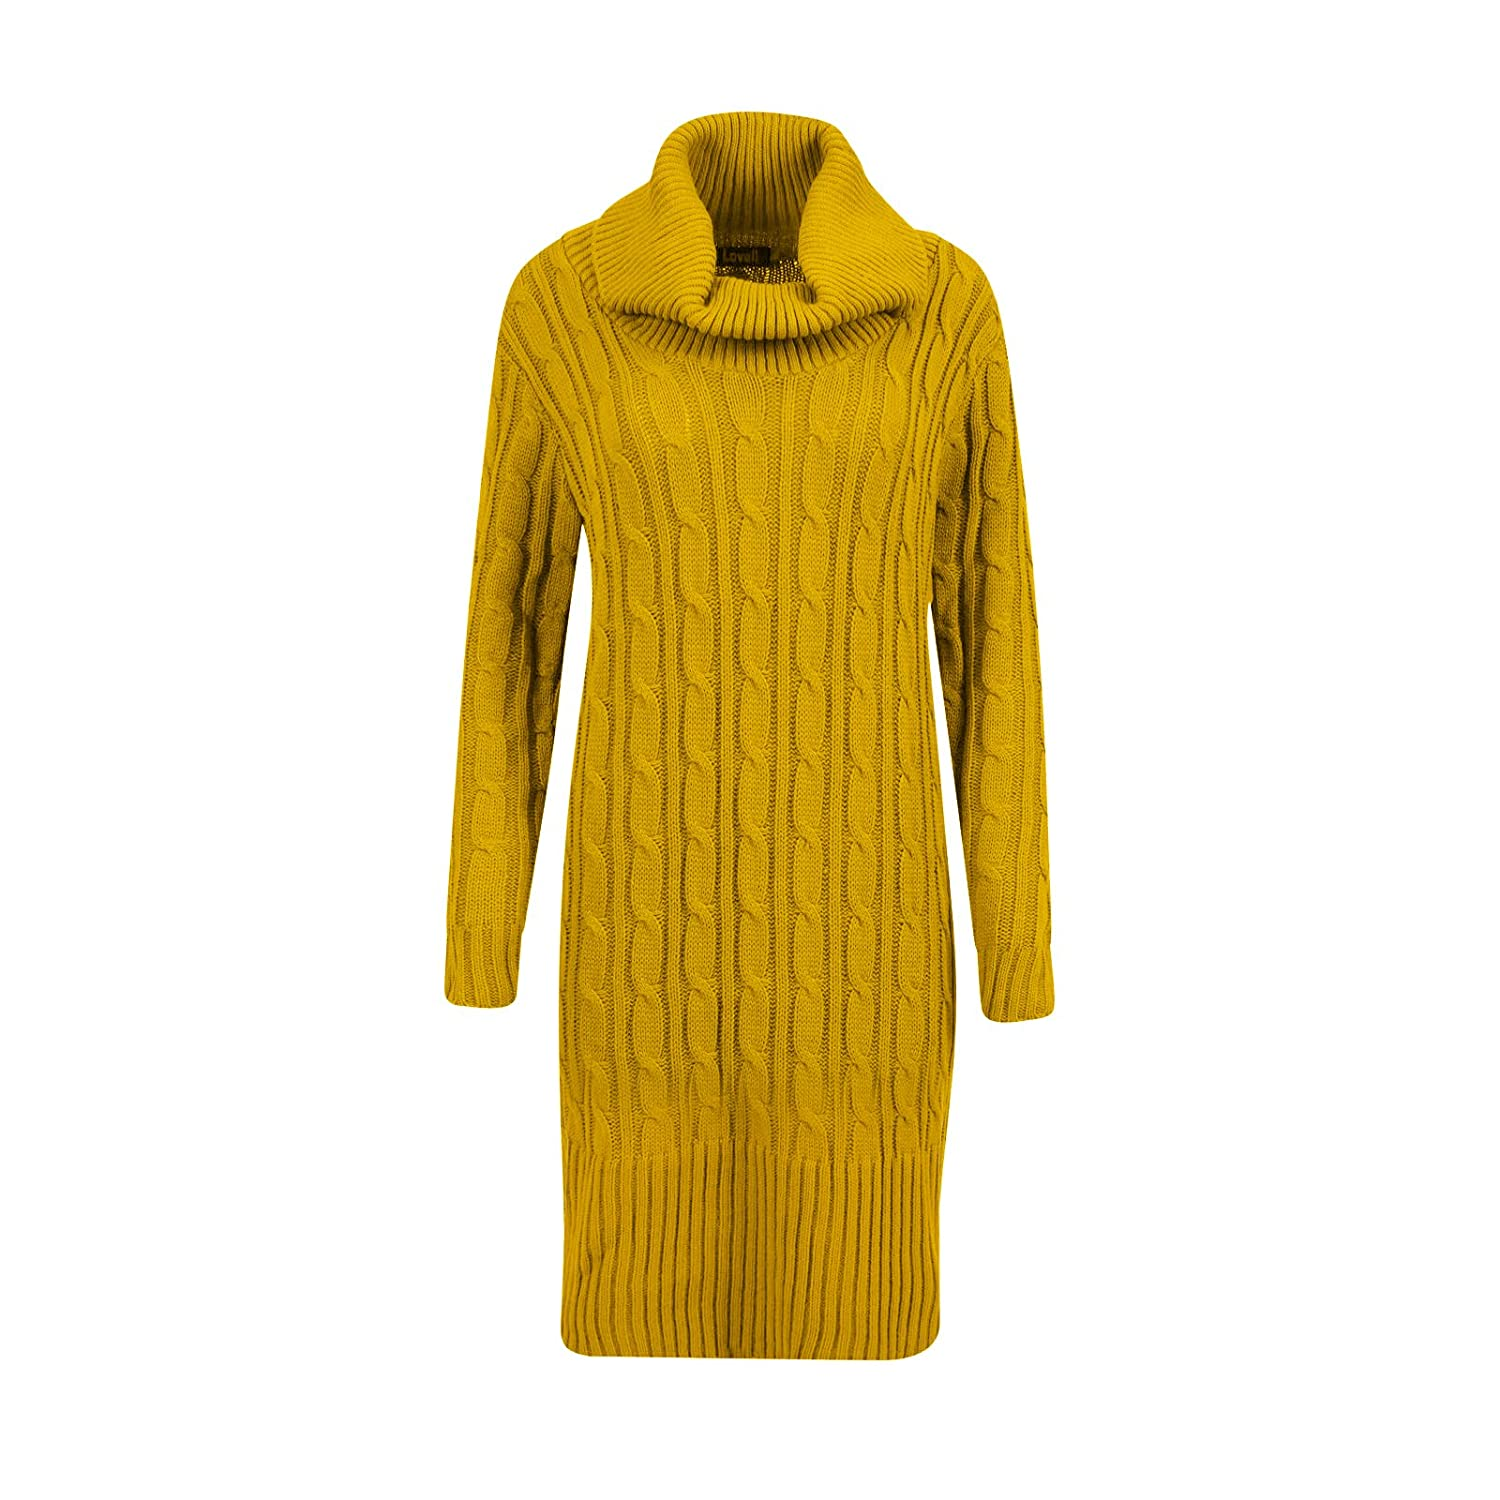 Womens Cable Knit Jumper Ladies Maxi Length Long Sleeve Knitwear Cowl Neck Dress